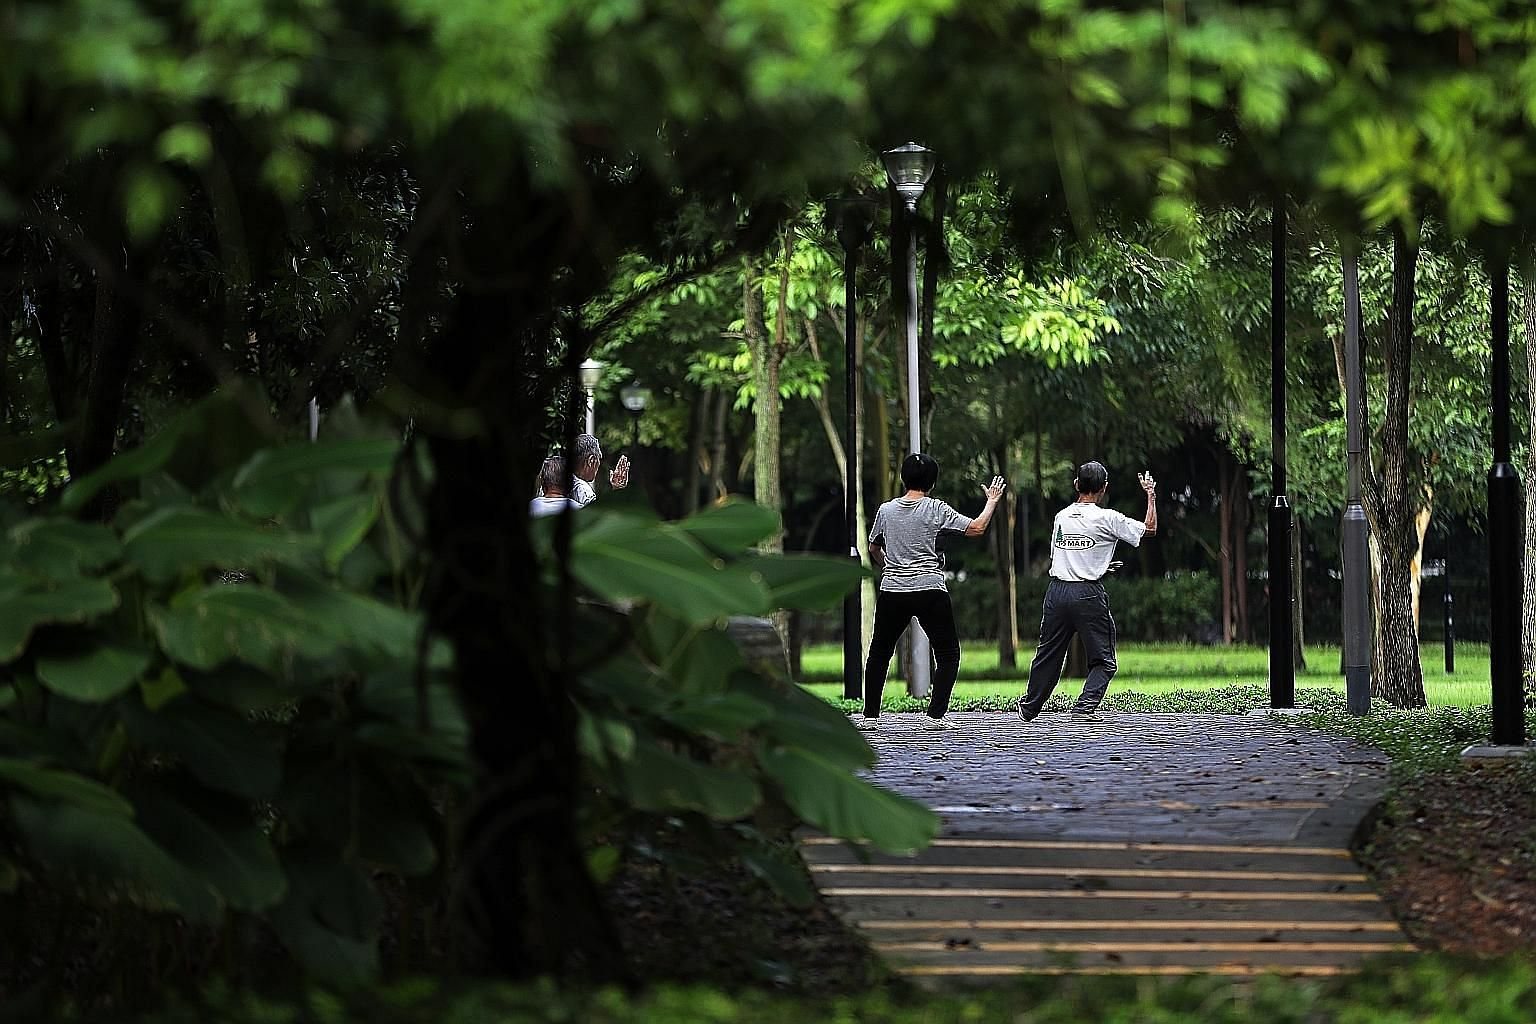 Half of Singaporeans who are healthy at the age of 65 are at risk of developing a severe disability over their lifetime, according to estimates by the Ministry of Health.